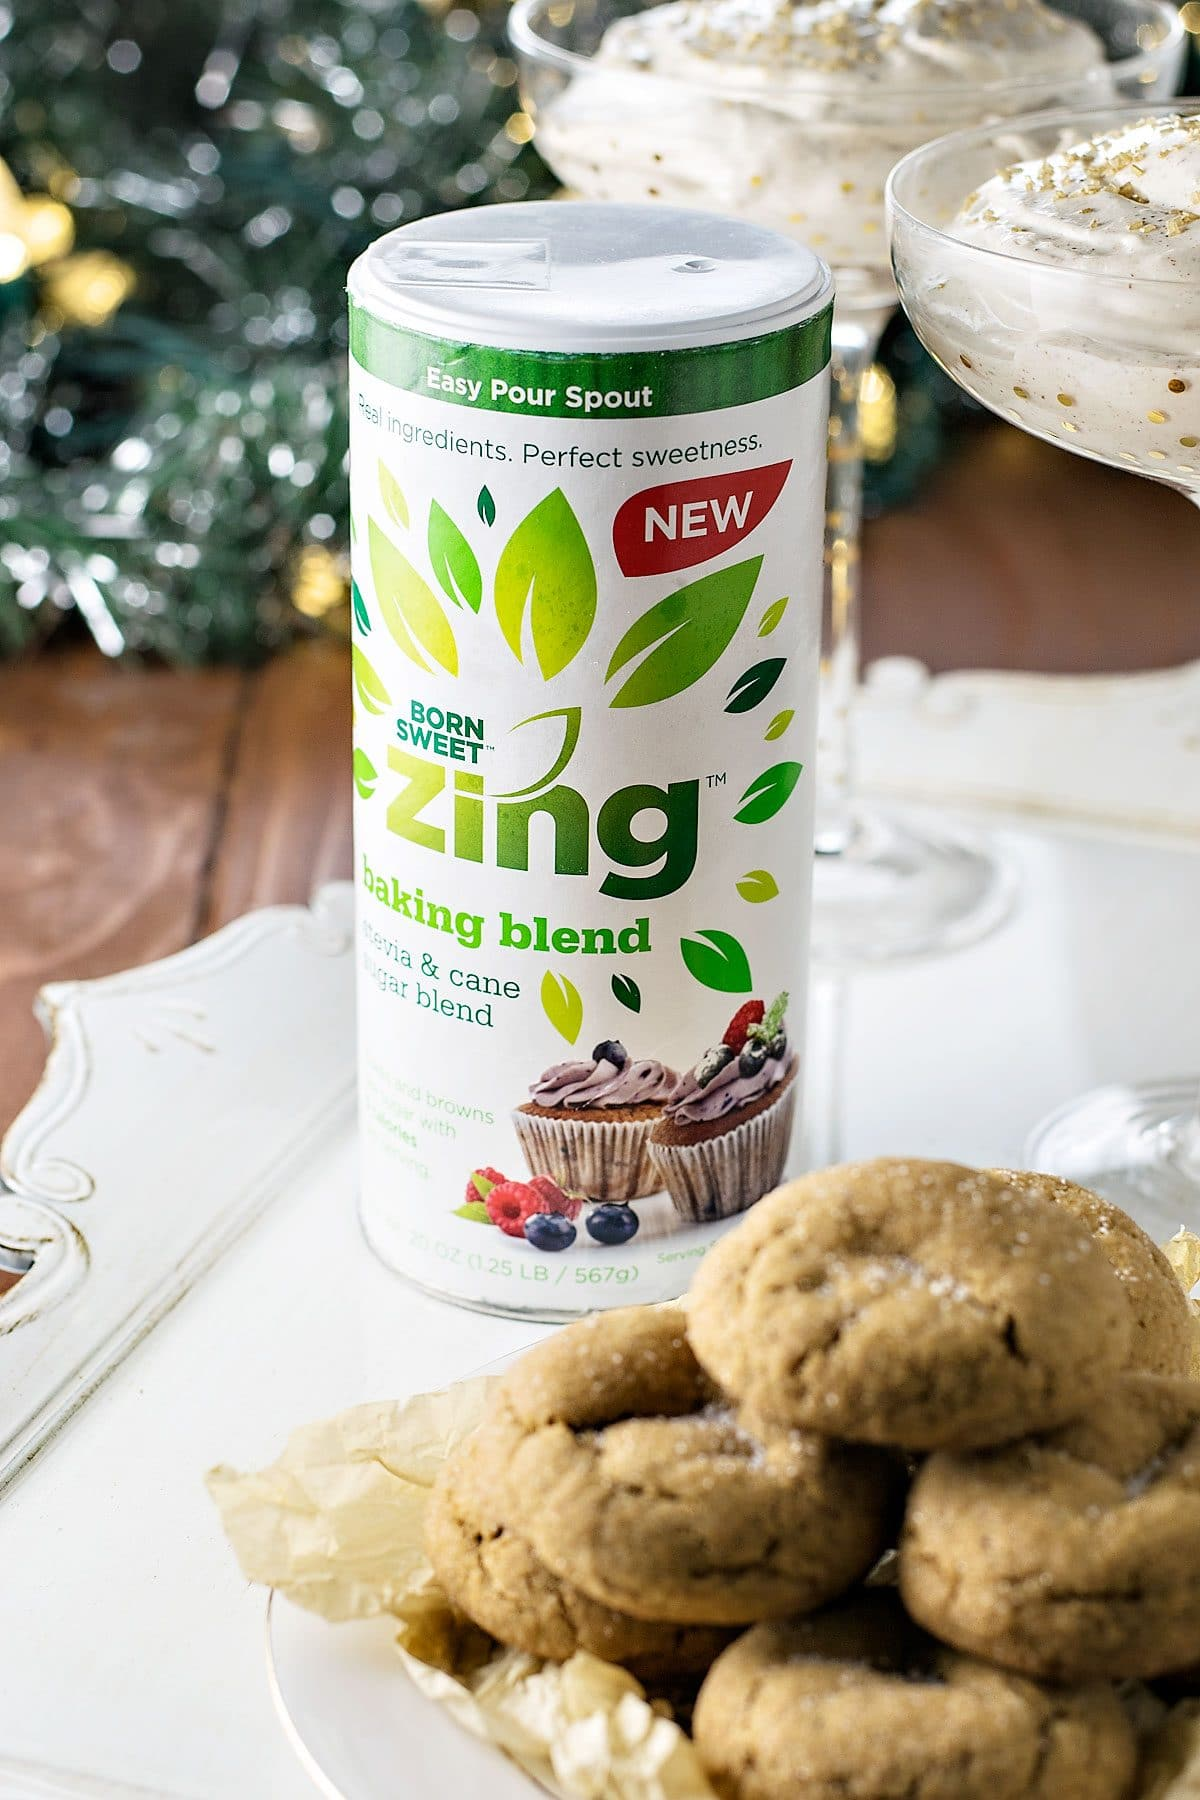 Skinny Ginger Cookies and Eggnog Dip! Need a festive treat to enjoy this holiday season without all the guilt? The ginger cookies are soft 'n chewy and the eggnog dip is creamy 'n sweet – all with fewer calories! | HomemadeHooplah.com #ZingBakingHoliday #ad